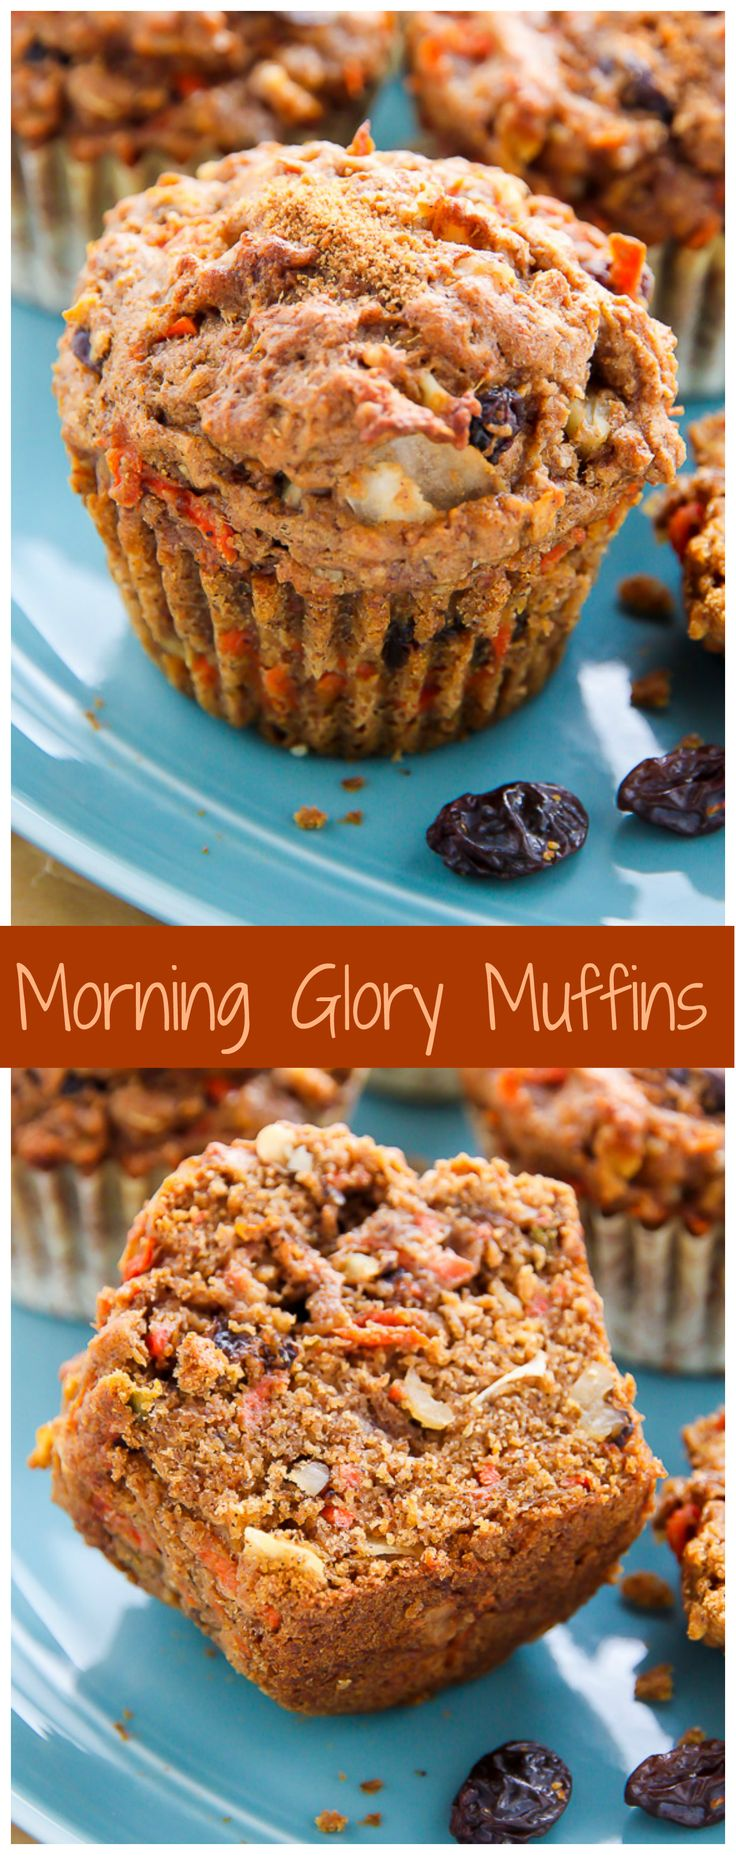 My Favorite Morning Glory Muffins! Hearty, healthy, and so delicious! #vegan Bakerbynature.com